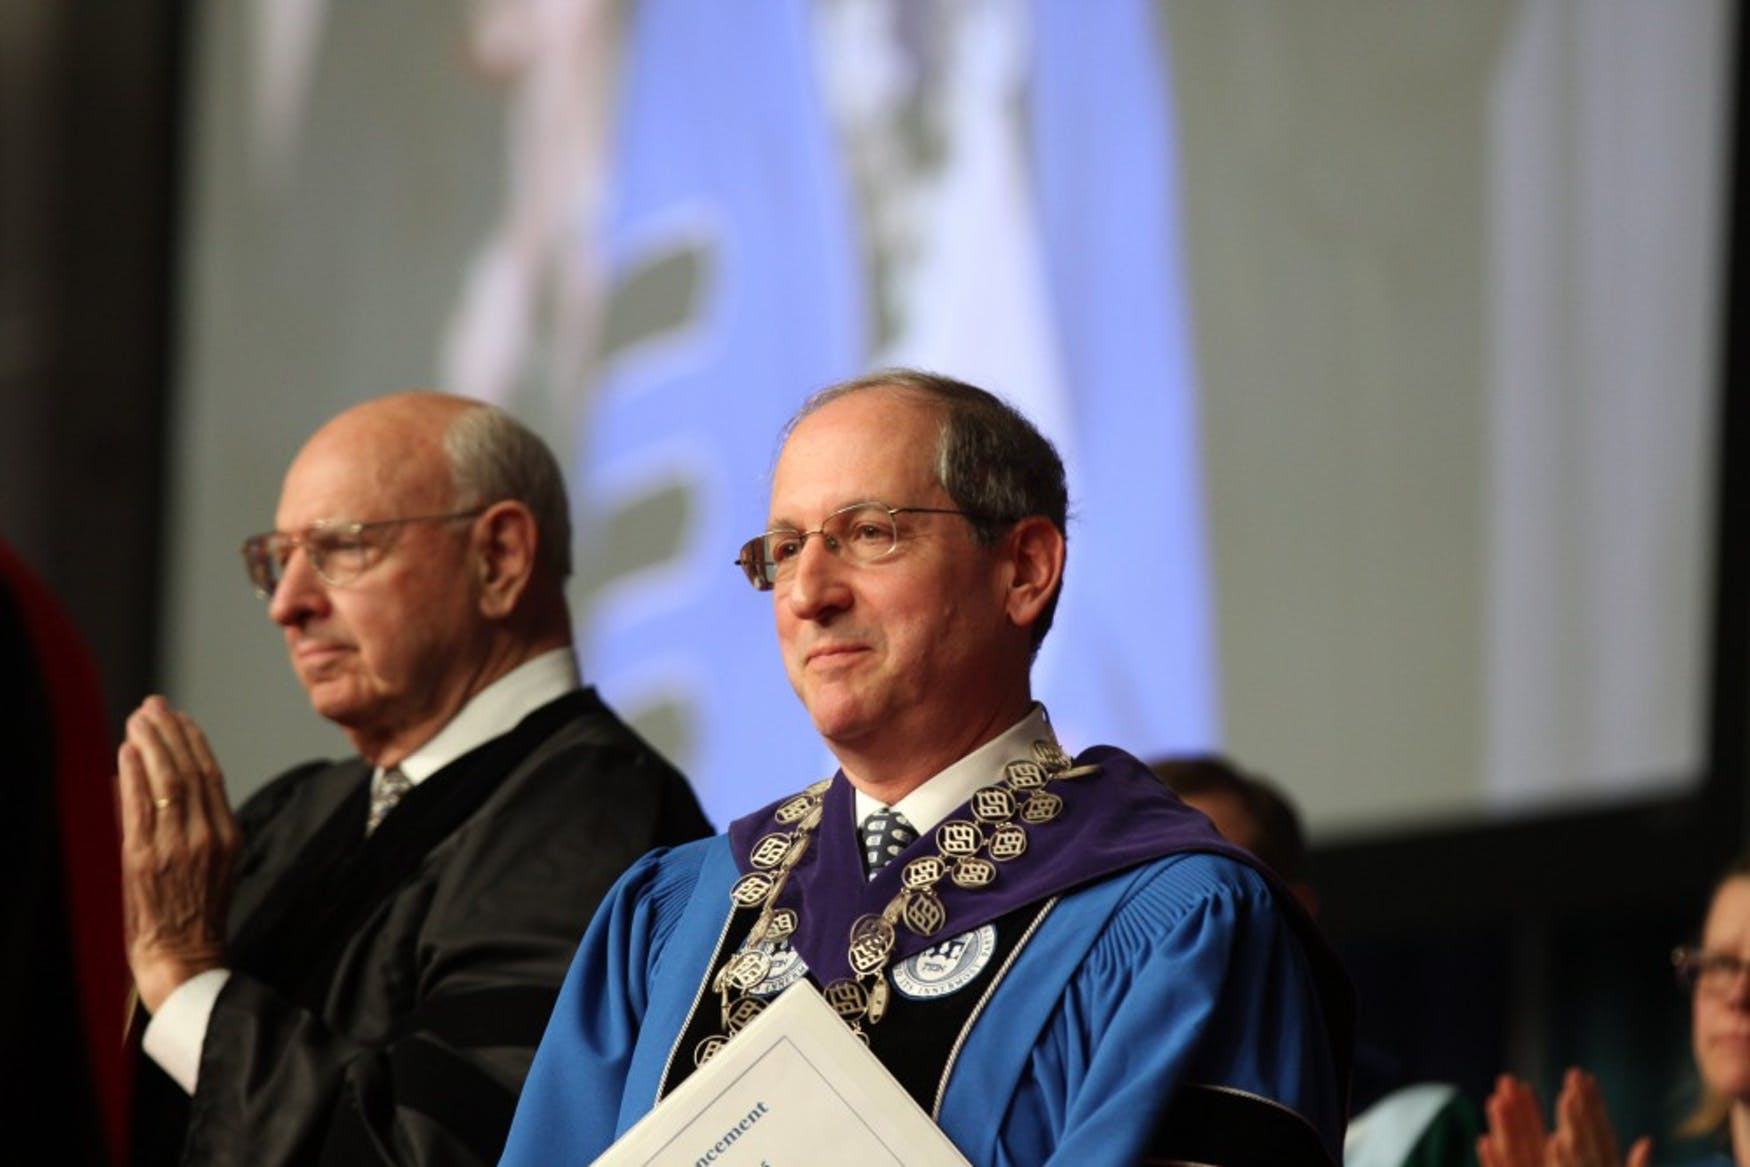 END TO AN ERA: President Fred Lawrence spoke at the 64th commencement exercises about his time as president, before introducing Thomas Pickering as the commencement speaker.